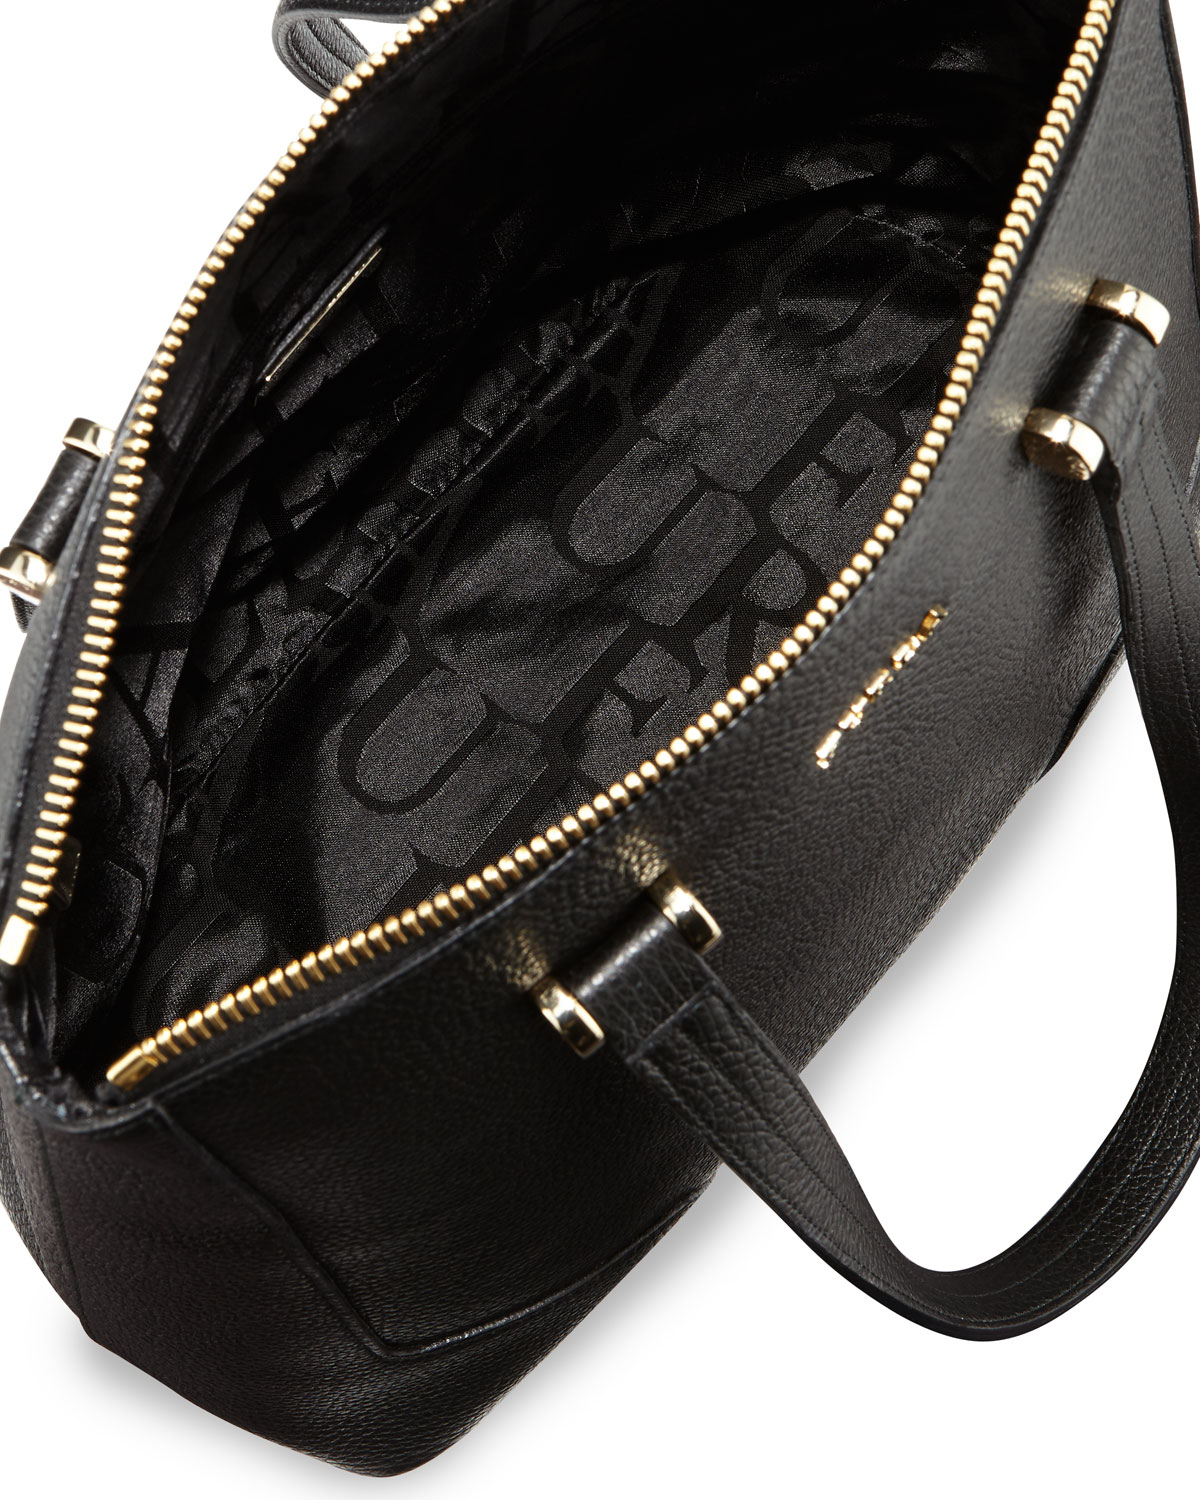 zipped shoulder bag - Black Furla 8Zq7Egn